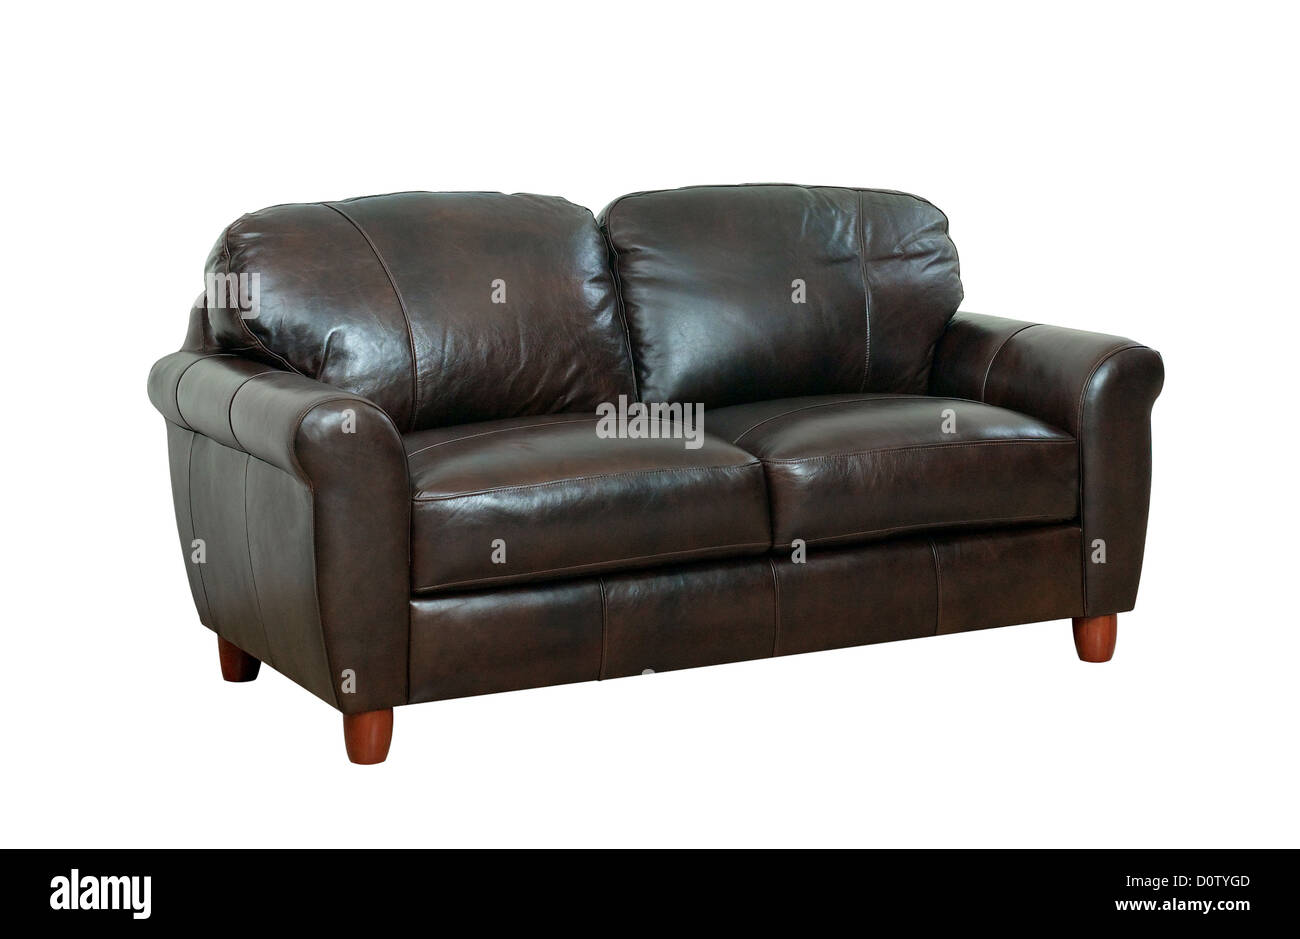 luxurious of the dark brown leather sofa best for luxury hotels or homes - Stock Image